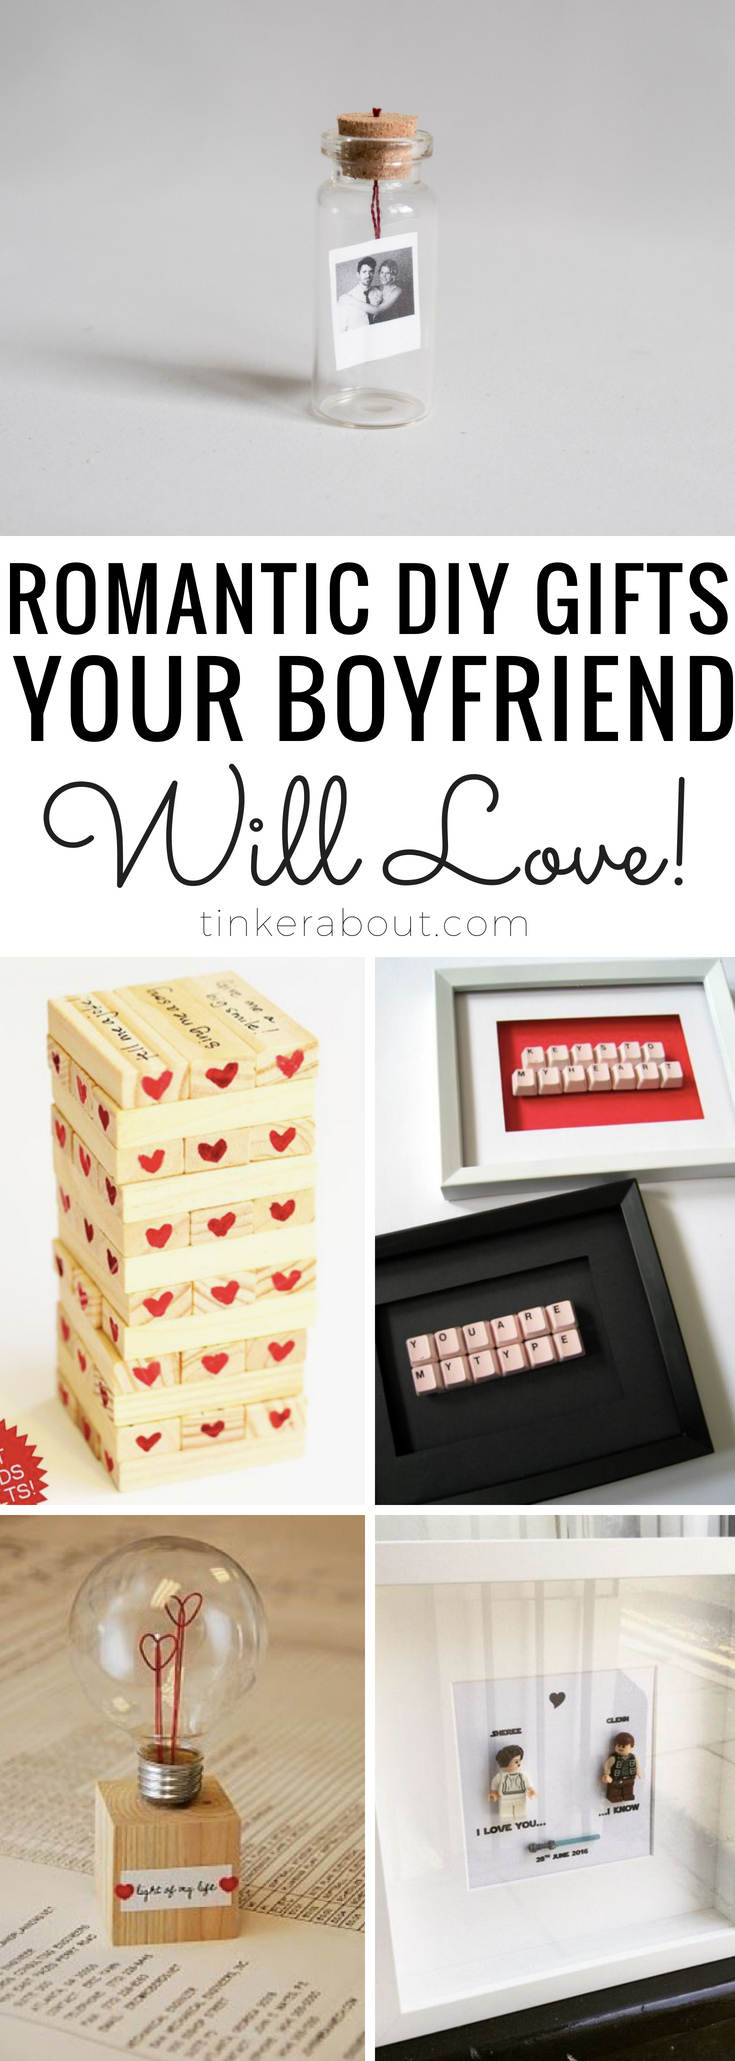 17 Diy Gifts For Boyfriends Ideal For Anniversaries Valentine S Day Diy Anniversary Gift Anniversary Gifts For Your Boyfriend Romantic Anniversary Gifts